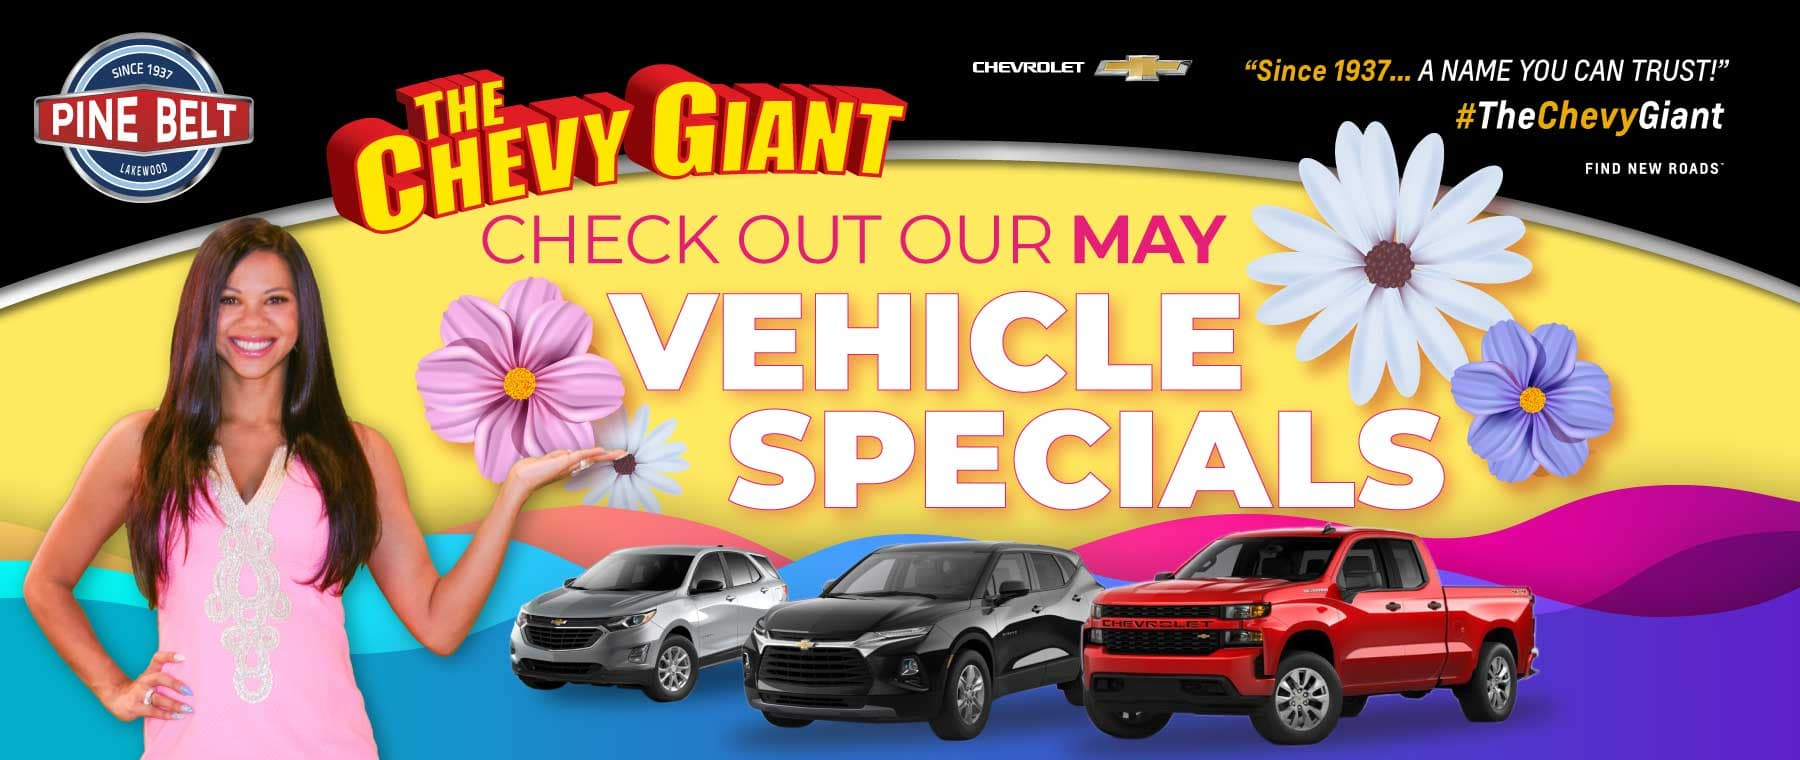 PBE-2085-May-Monthly-Specials_CHEVY